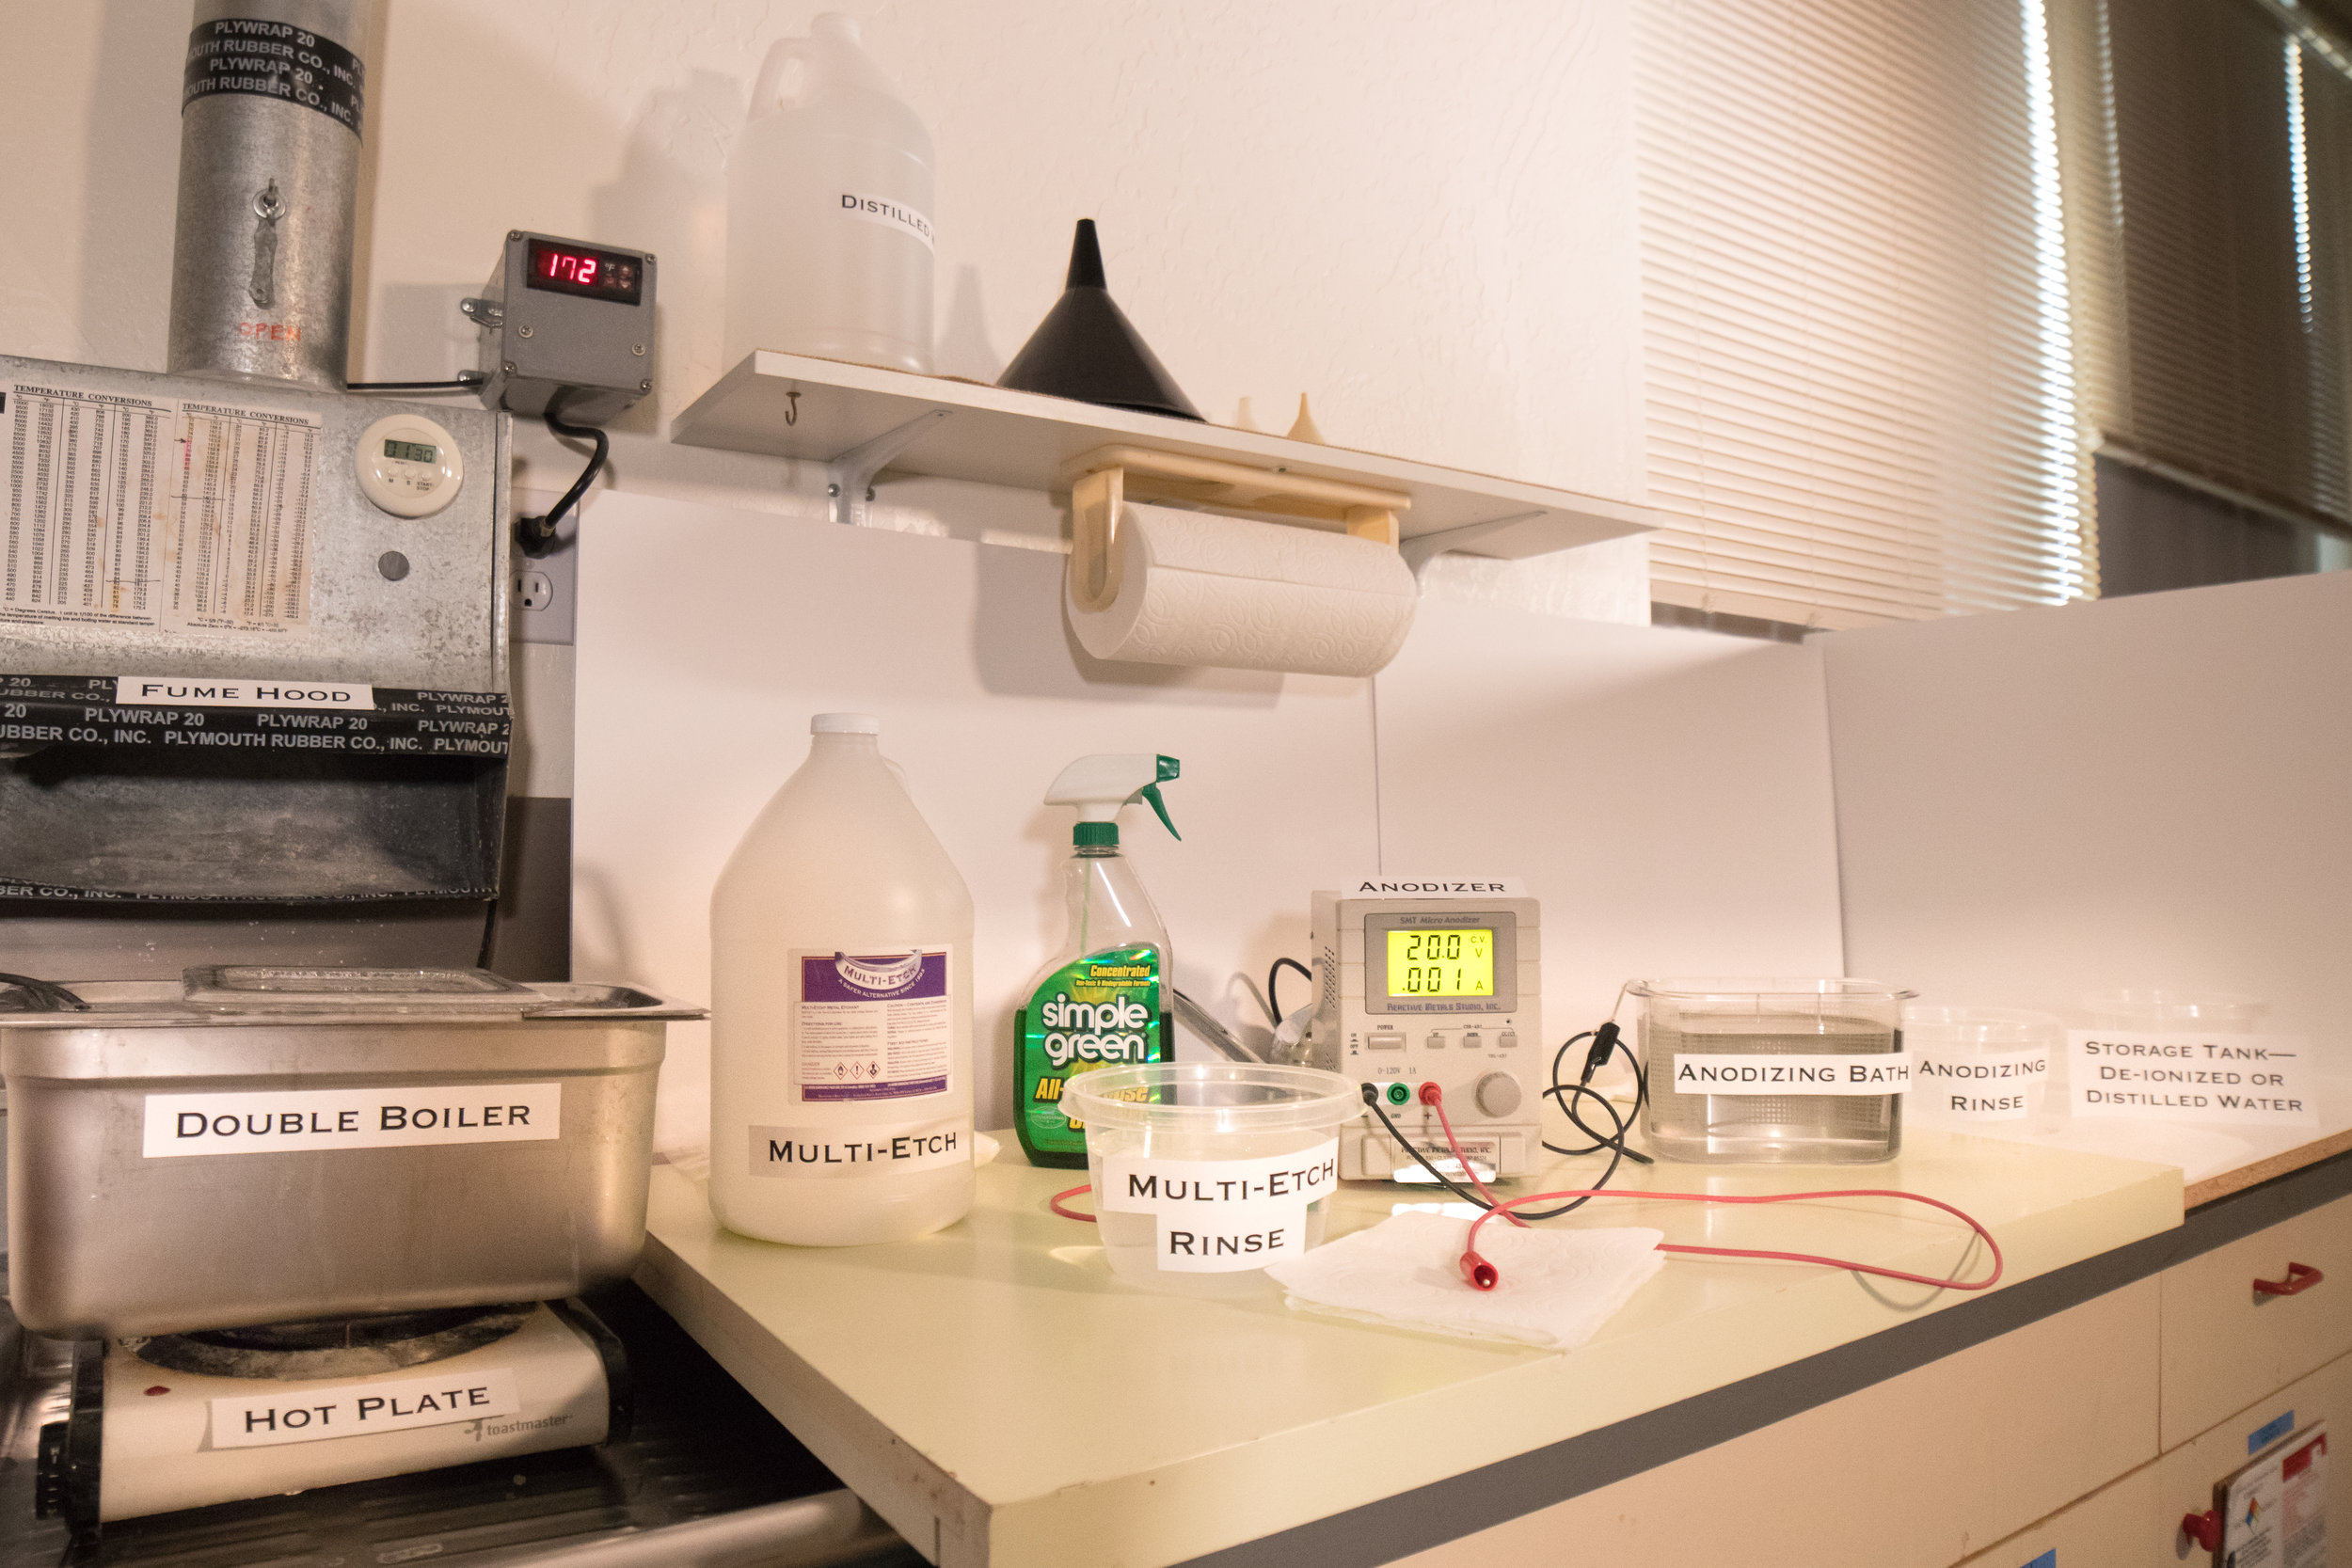 Potential anodizing lab set-up. Lab set-up features a double boiler beneath a fume hood, jug of Multi-Etch, a rinse bowl, cleaning solution, anodizing machine next to anodizing bath, bowl for anodizing rinse and a storage tank marked for de-ionized or distilled water.